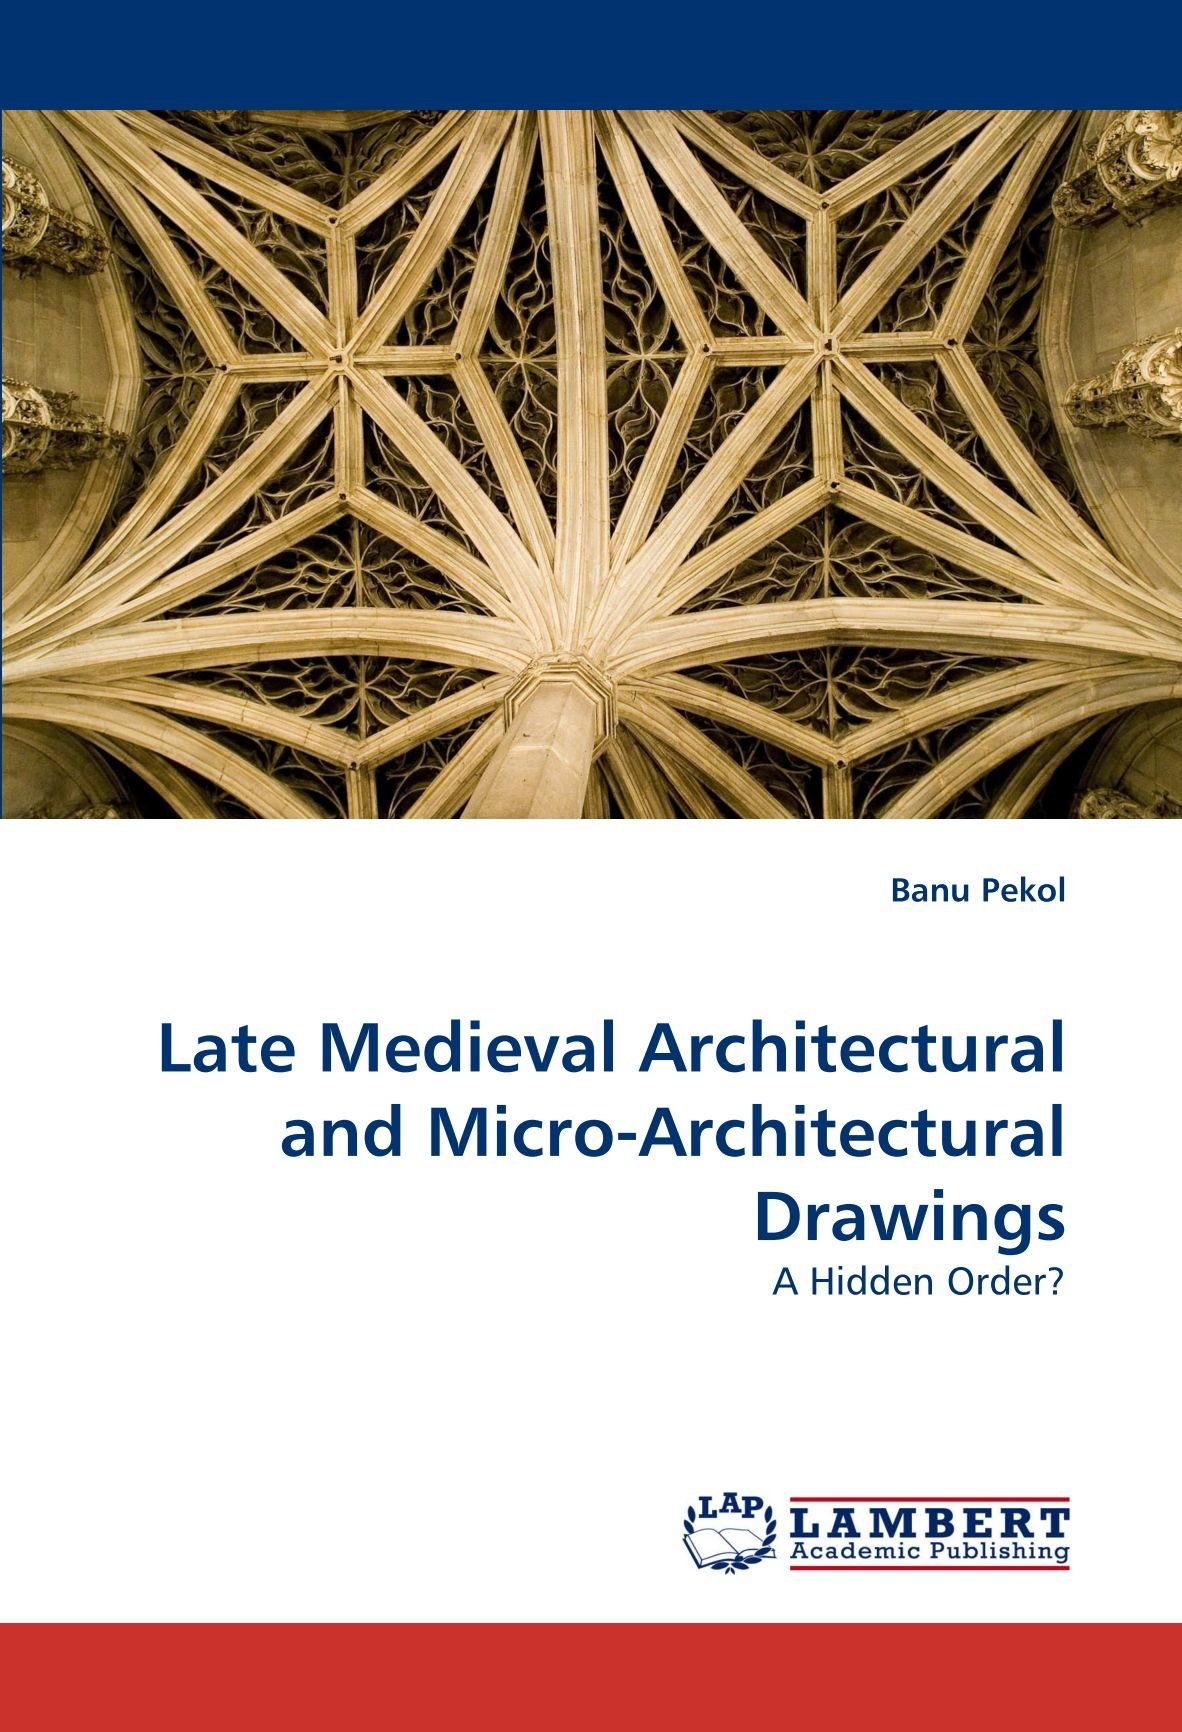 Download Late Medieval Architectural and Micro-Architectural Drawings: A Hidden Order? pdf